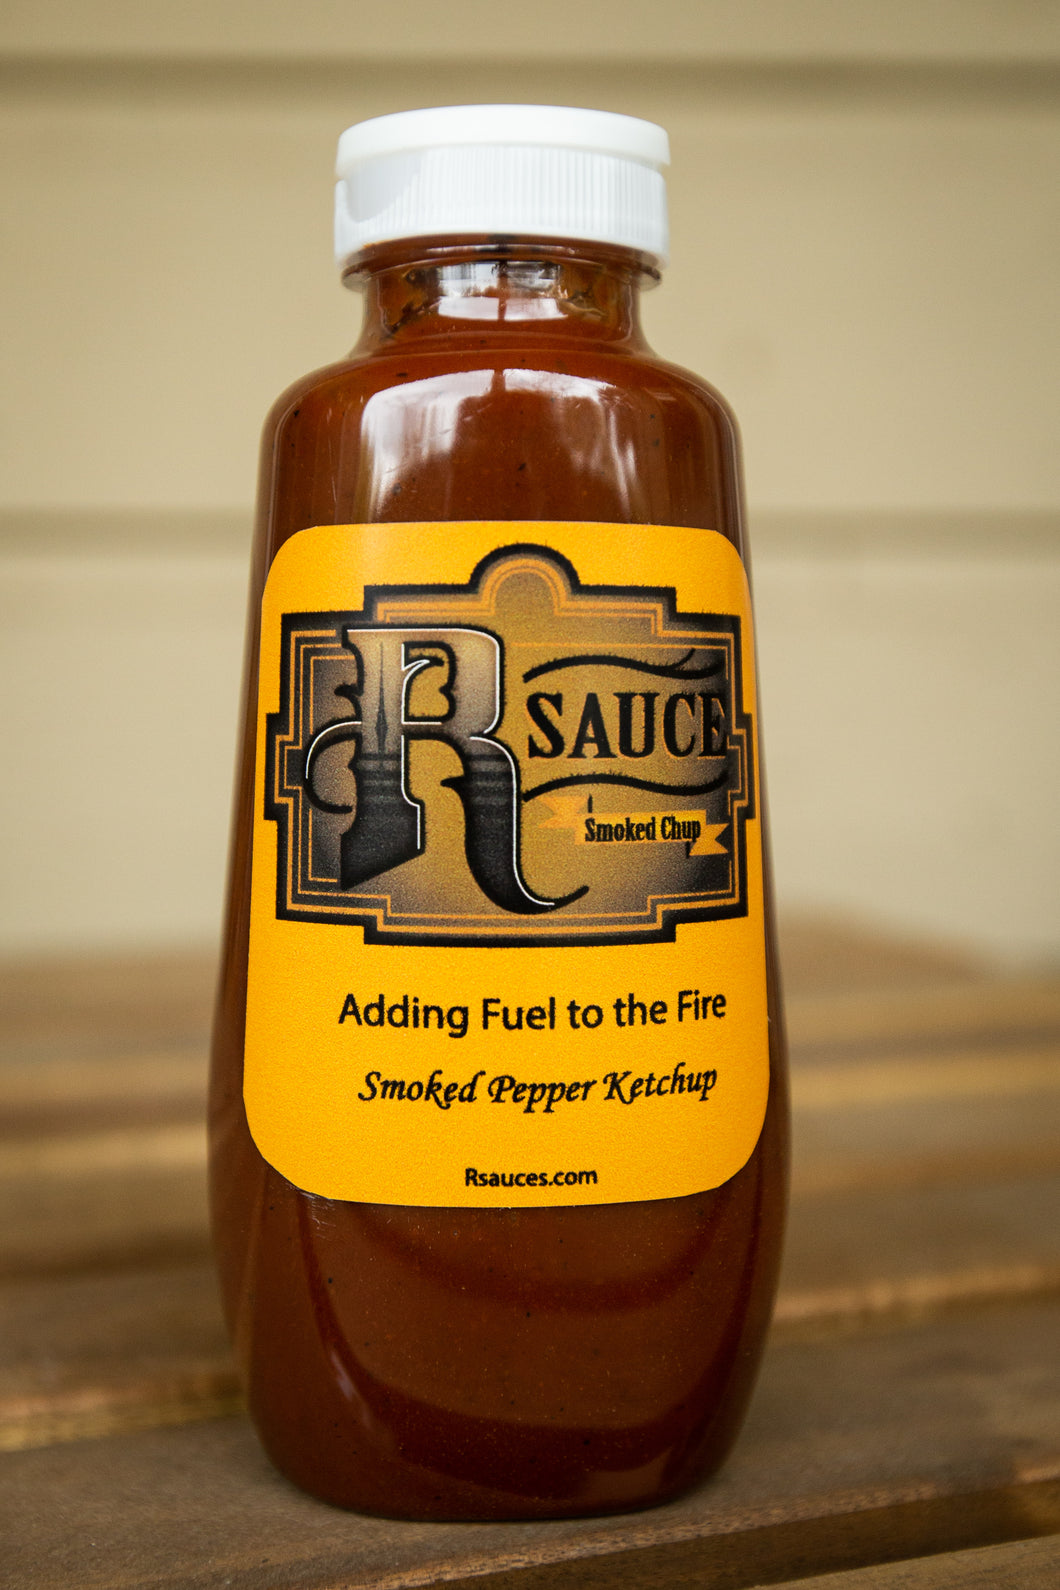 Smoked Pepper Spicy Ketchup - 12 Oz Bottle